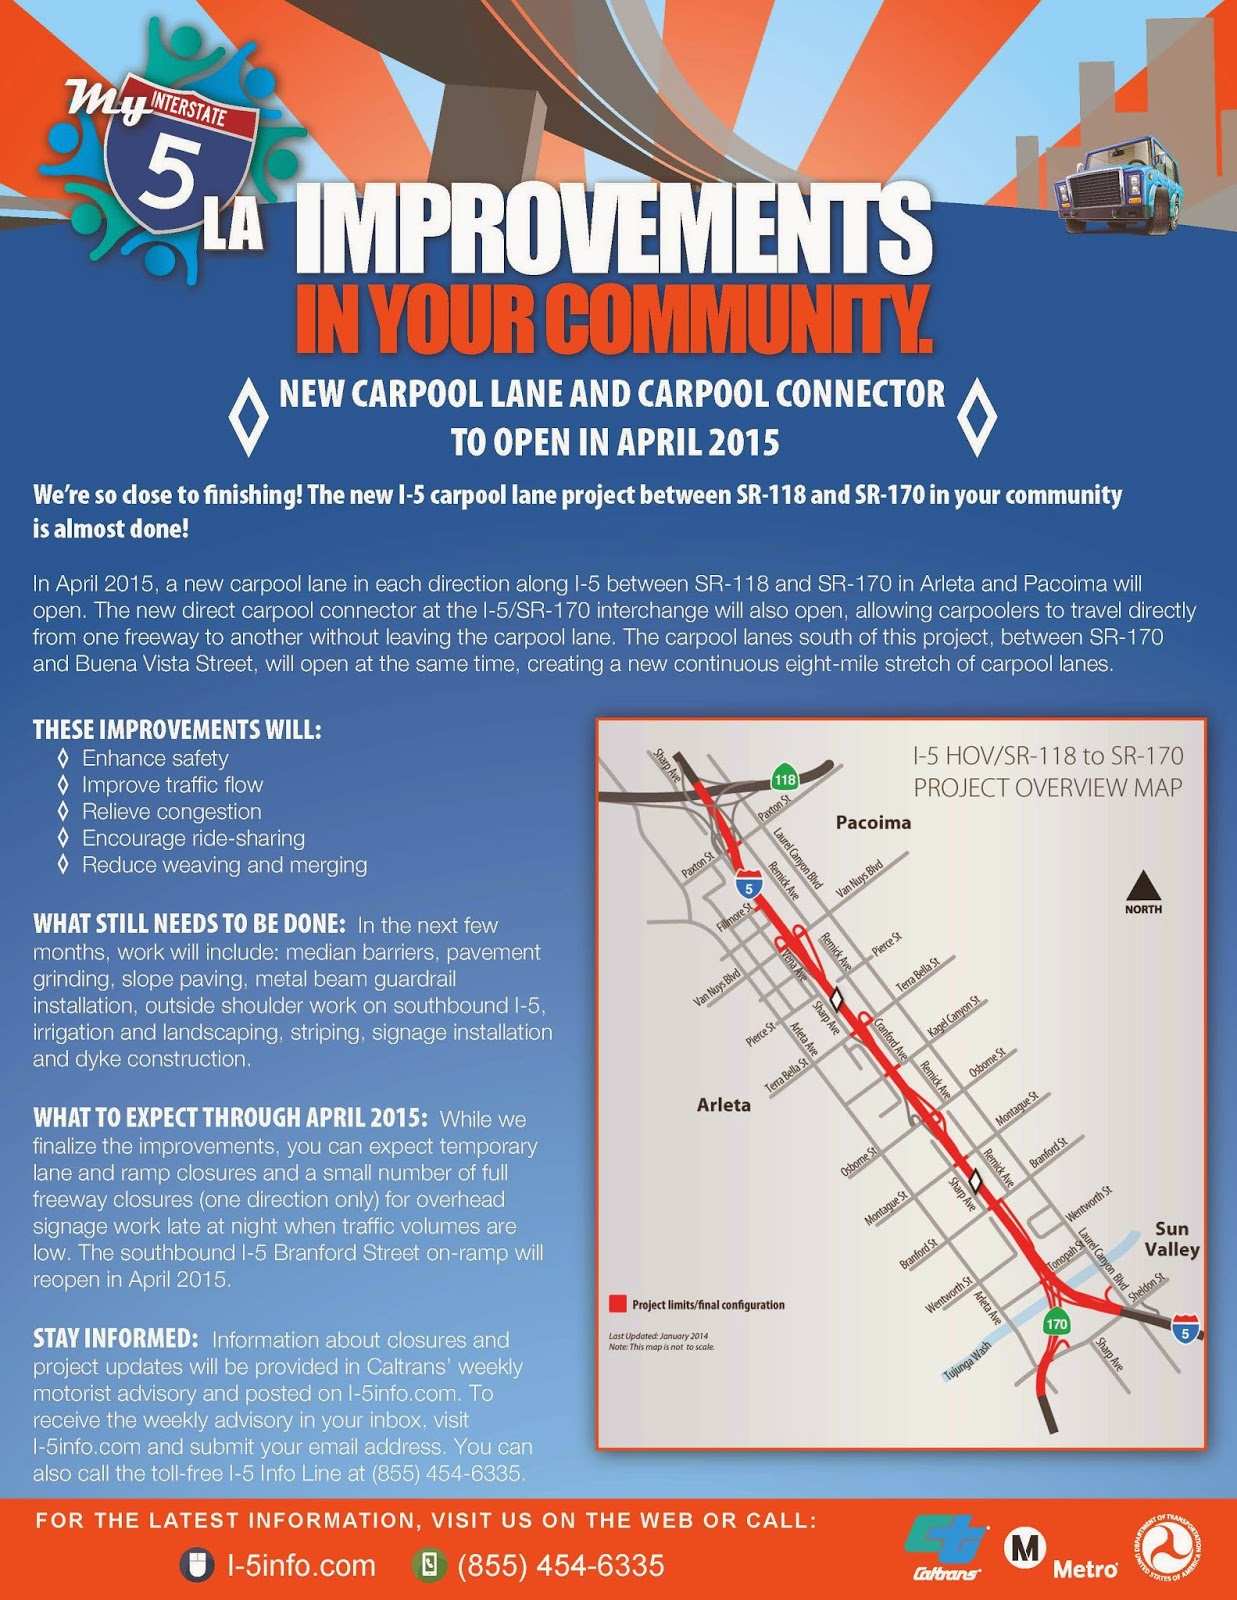 http://i-5info.com/2015/01/26/project-update-sr-118-to-sr-170-hov-improvements-on-track-for-april-completion/